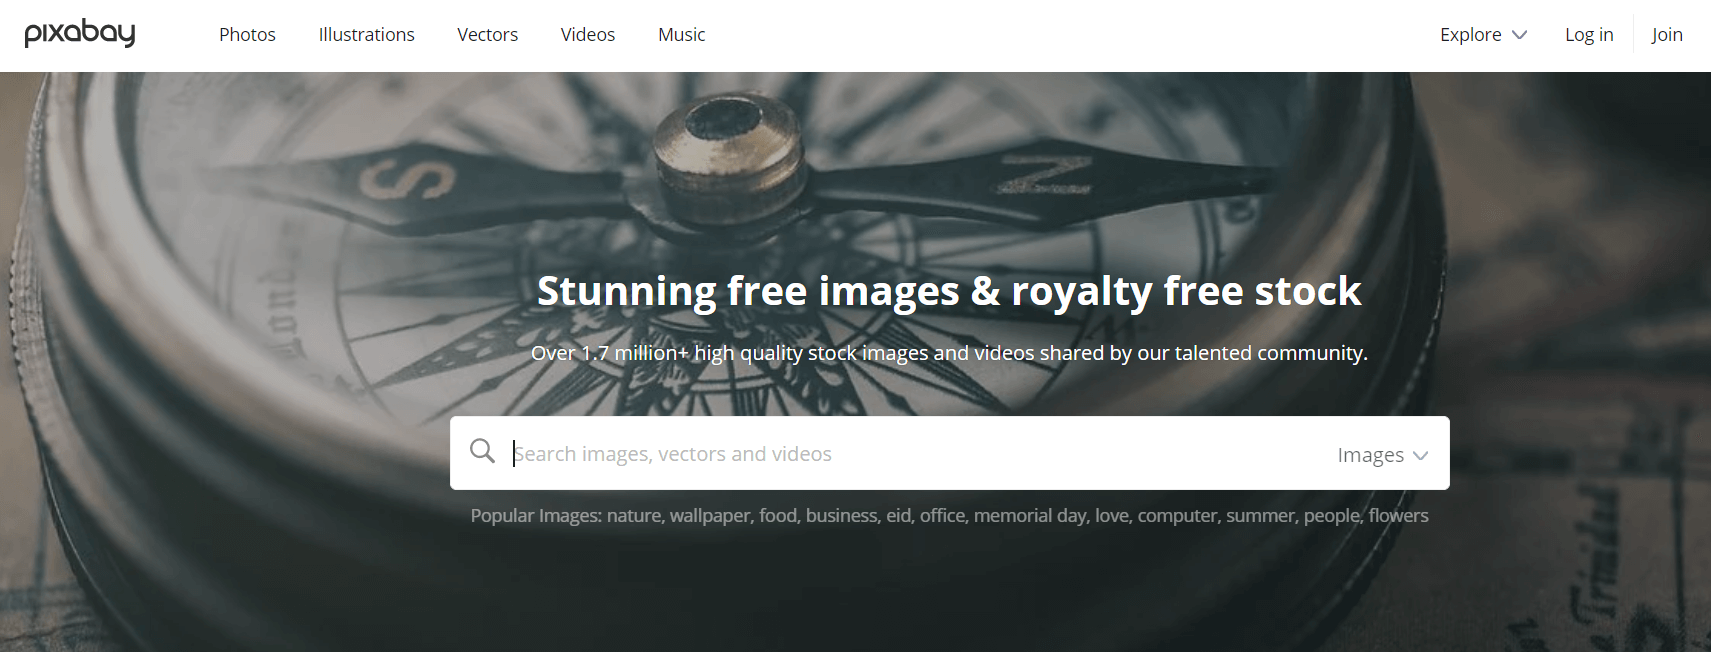 Pixabay - Best Free Stock Photo Websites